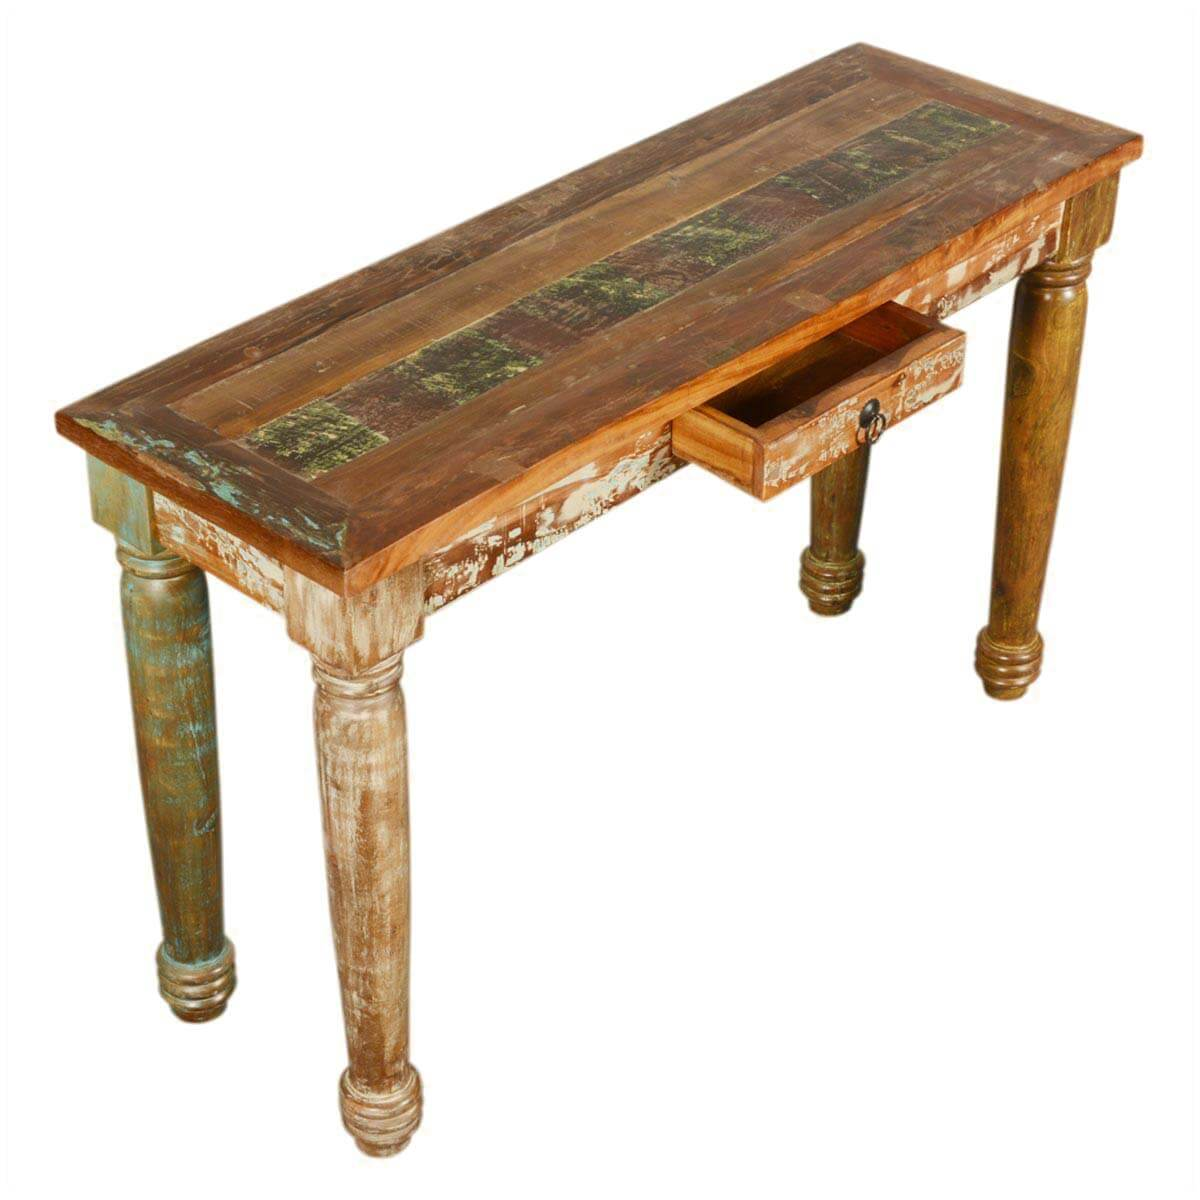 Rustic Wood Foyer Table : Reclaimed wood handcrafted sofa entryway hall rustic